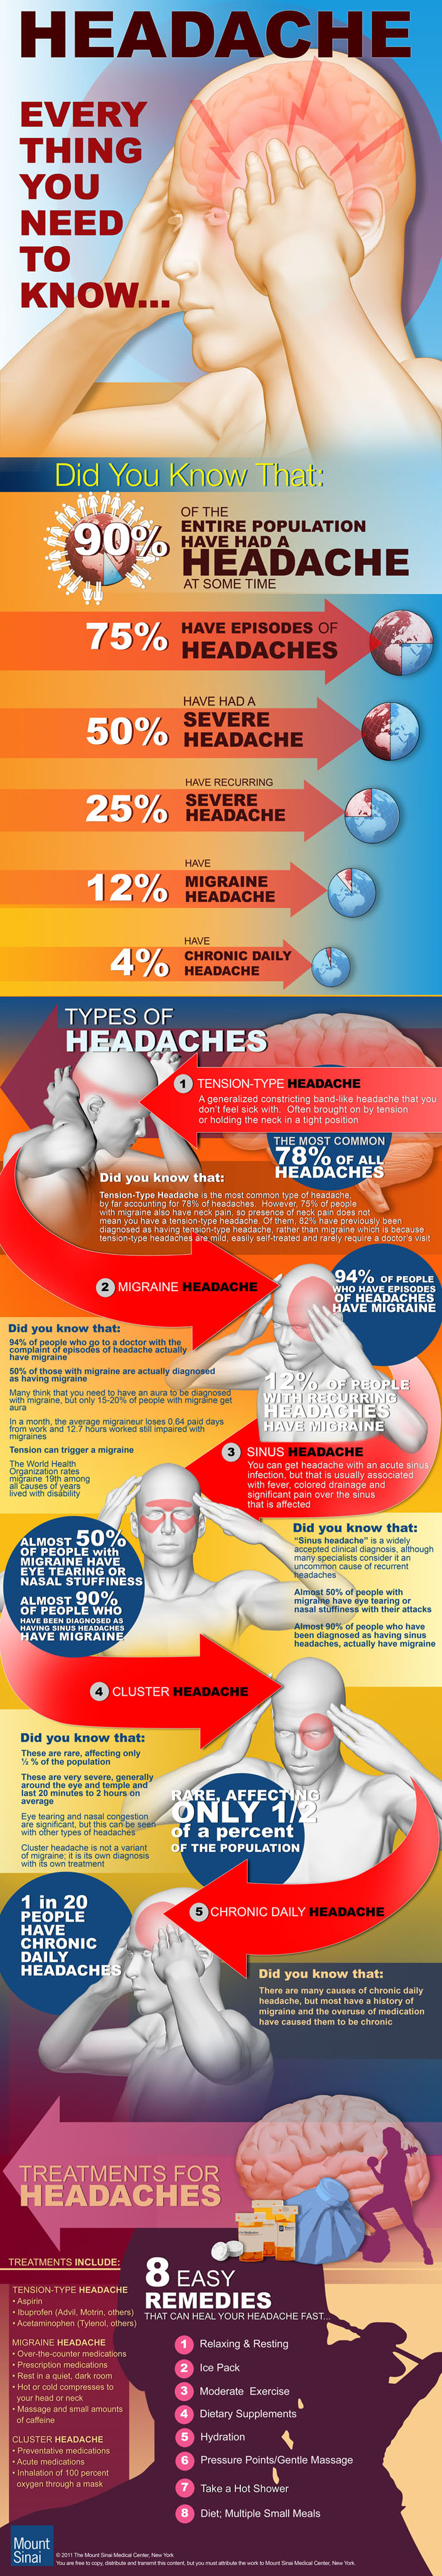 HEADACHE.Infographic704